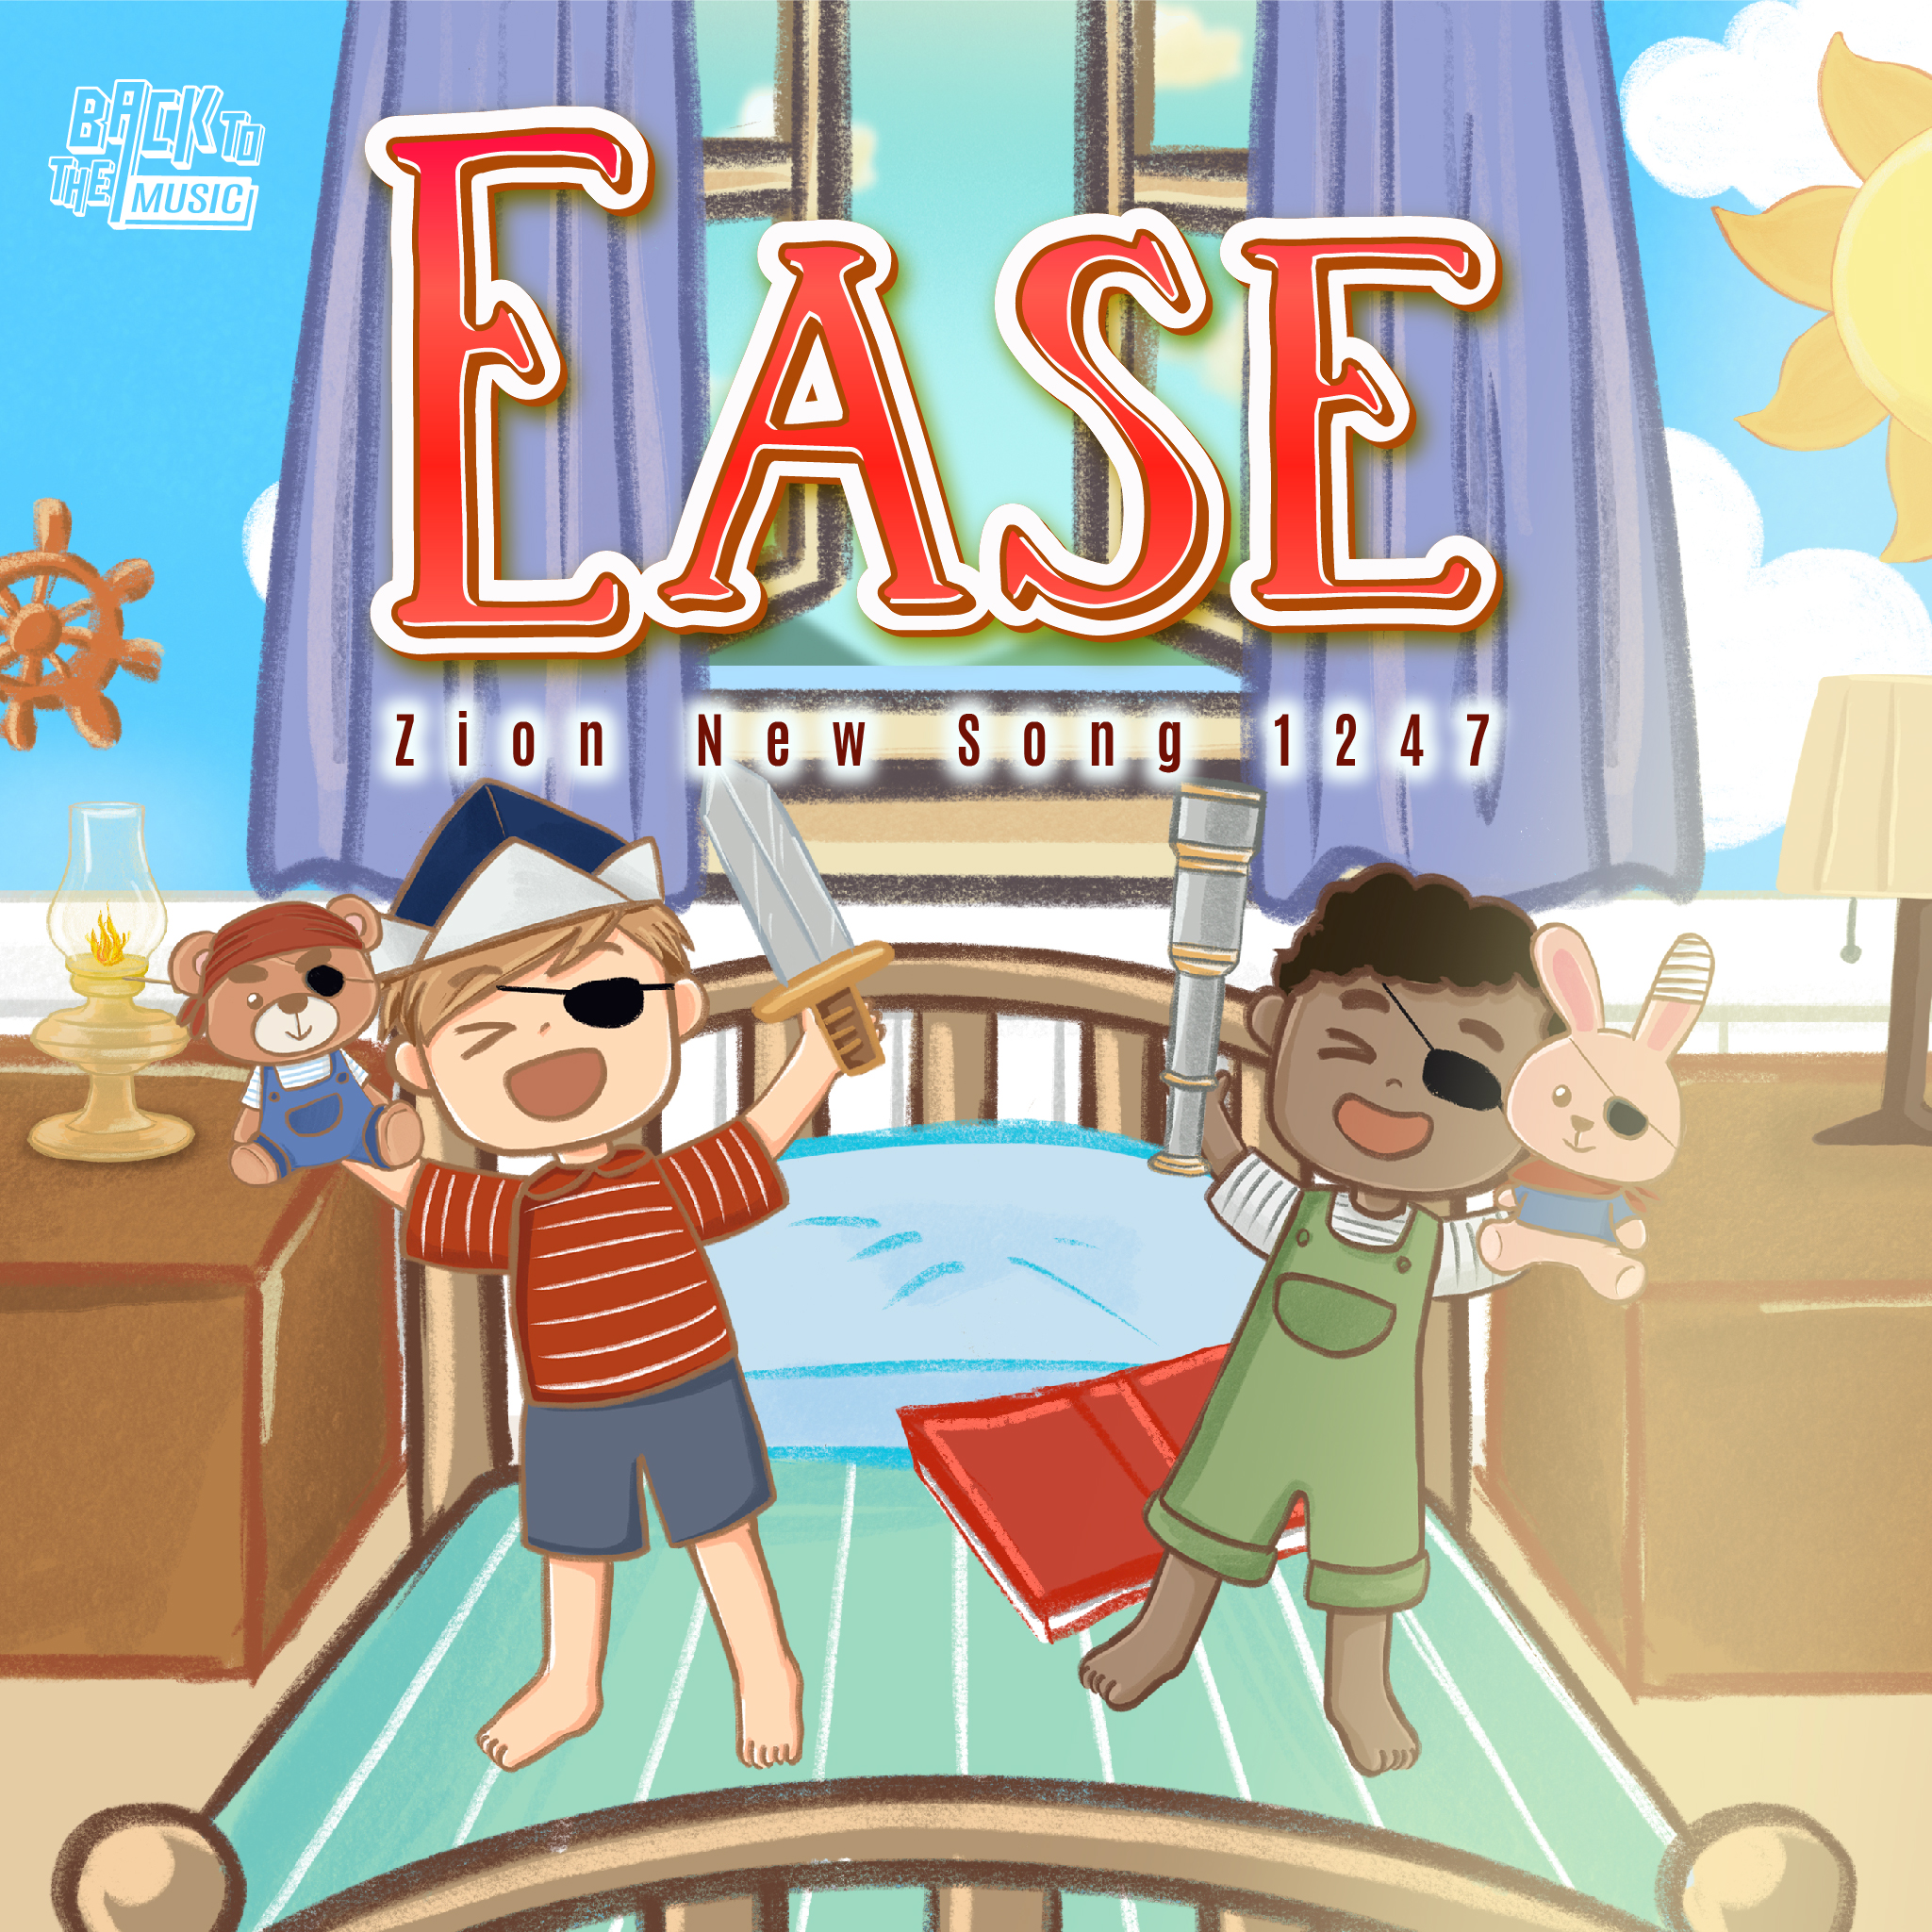 【Ease】| Music | Praise the Lord 2021 | Back To The Music